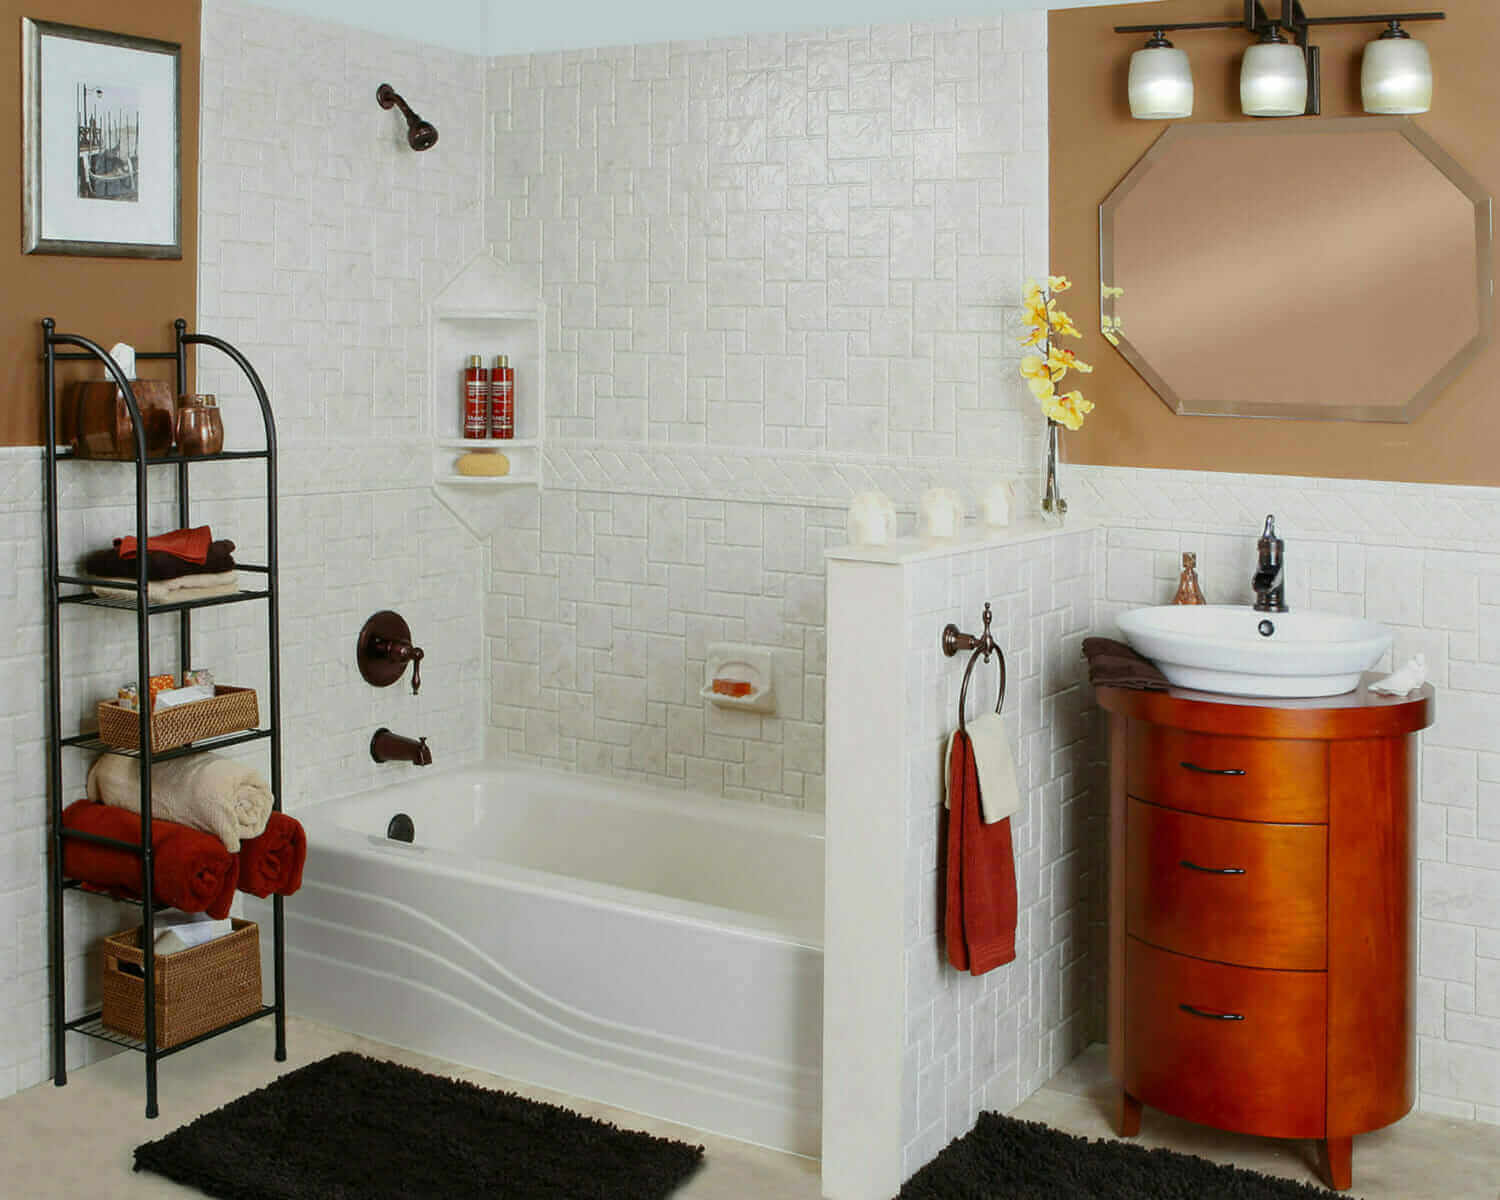 Salt lake city professional bathroom remodeling five for Professional bathroom renovations